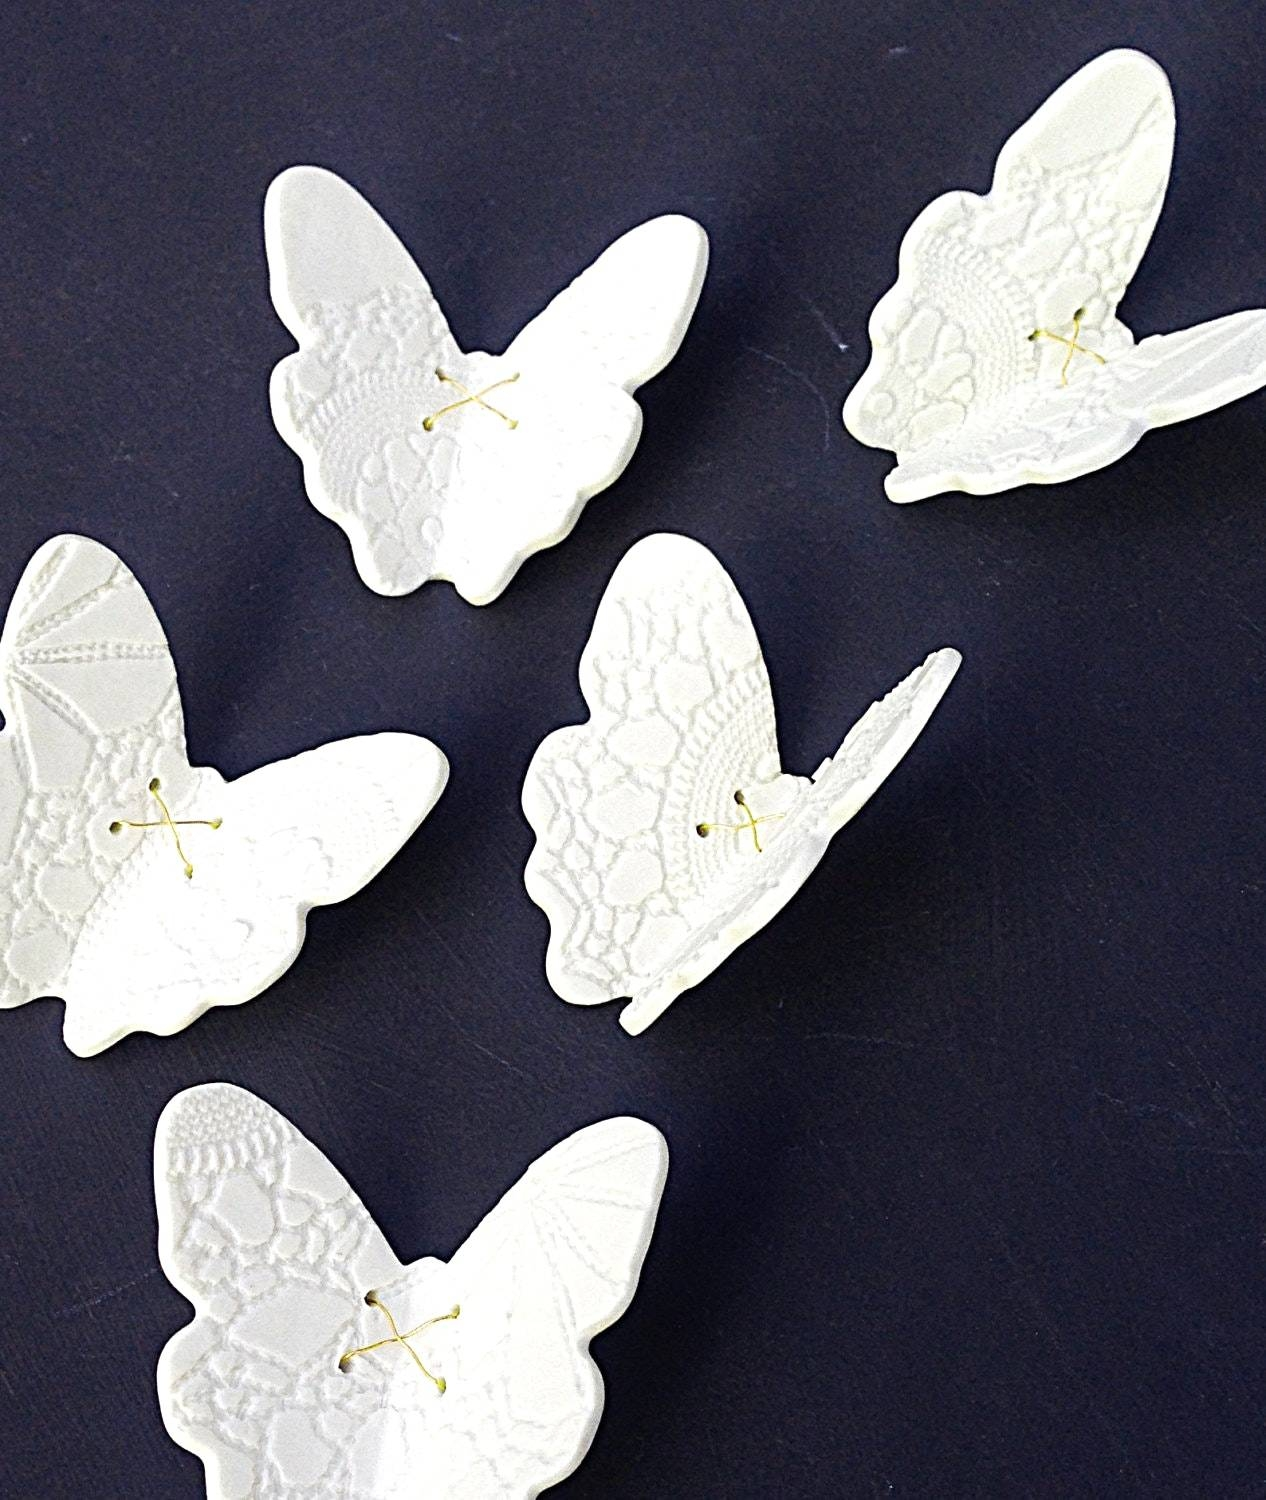 White Ceramic Wall Art With Best 25 Ideas On Pinterest Clay And Regarding 2018 Ceramic Butterfly Wall Art (View 29 of 30)